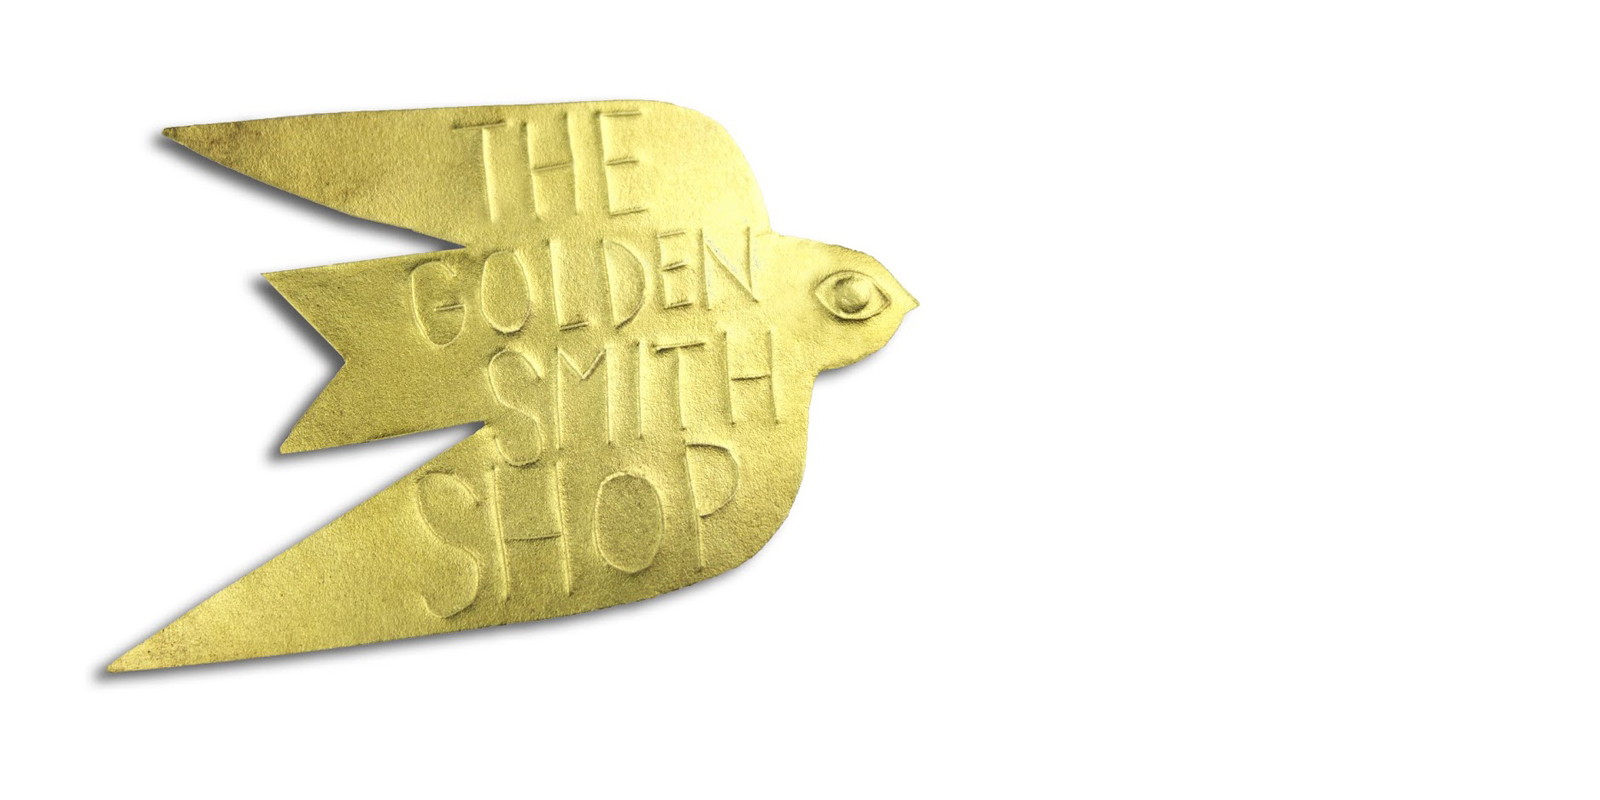 THE GOLDEN SMITH